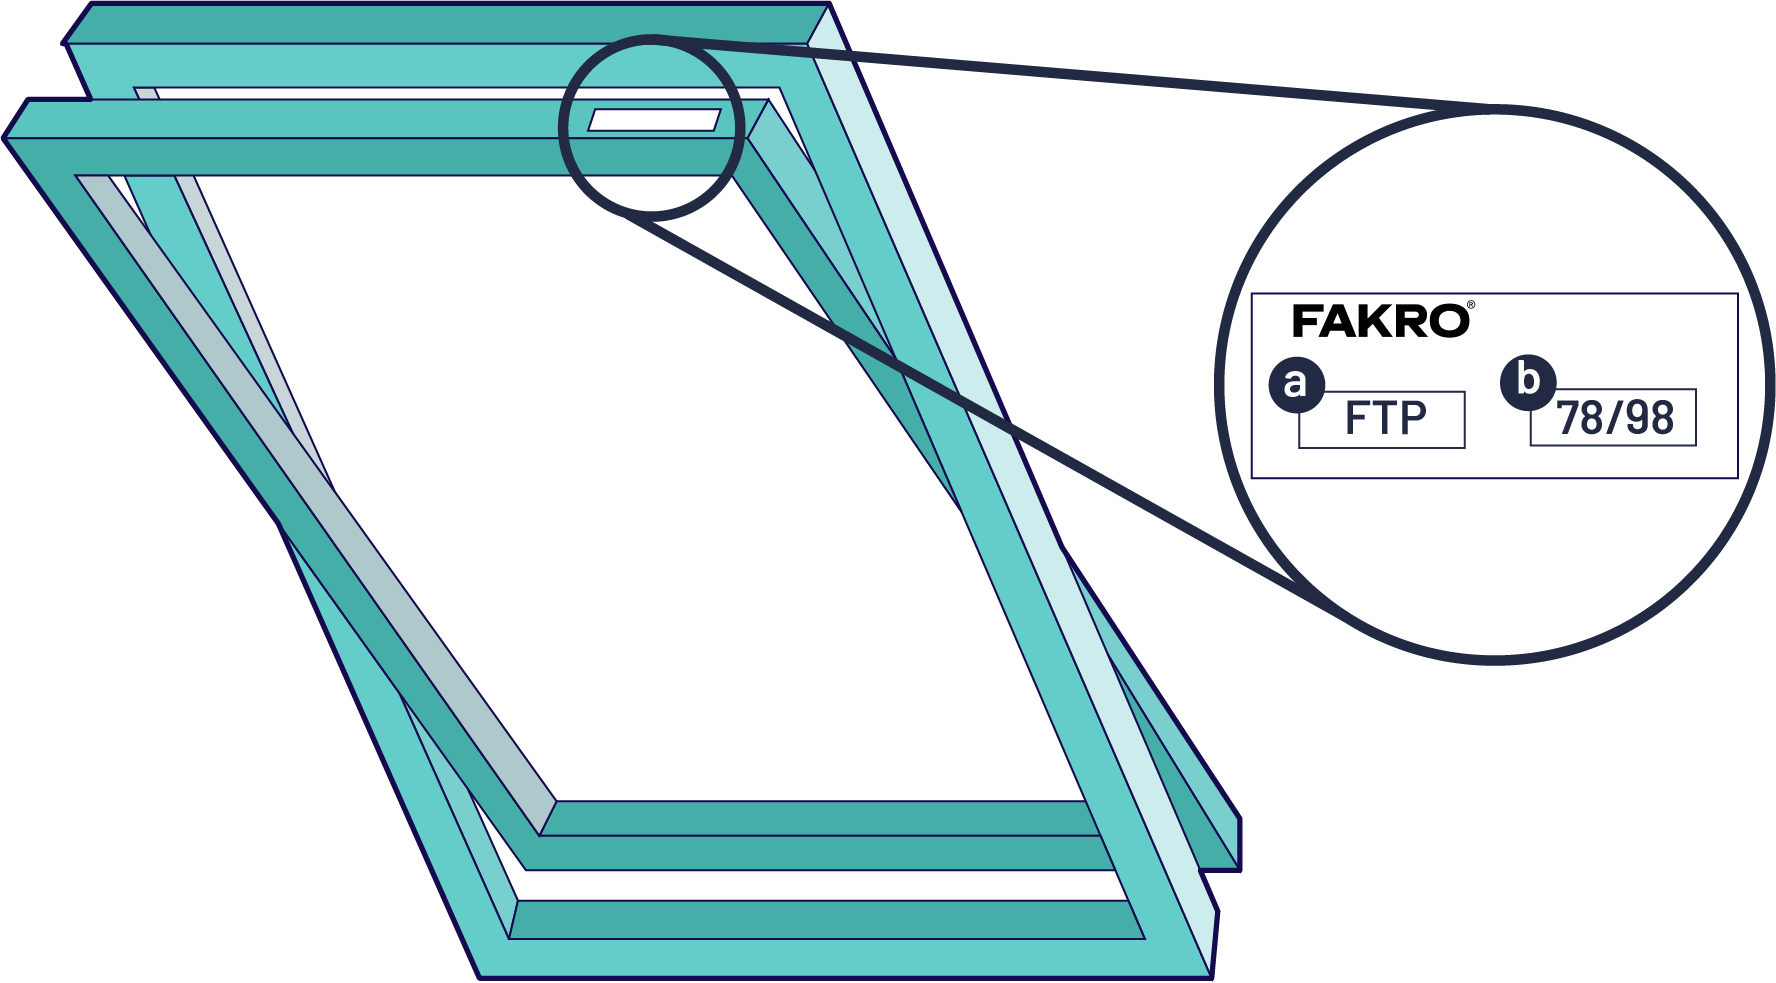 A skylight window showing where to find your Fakro code